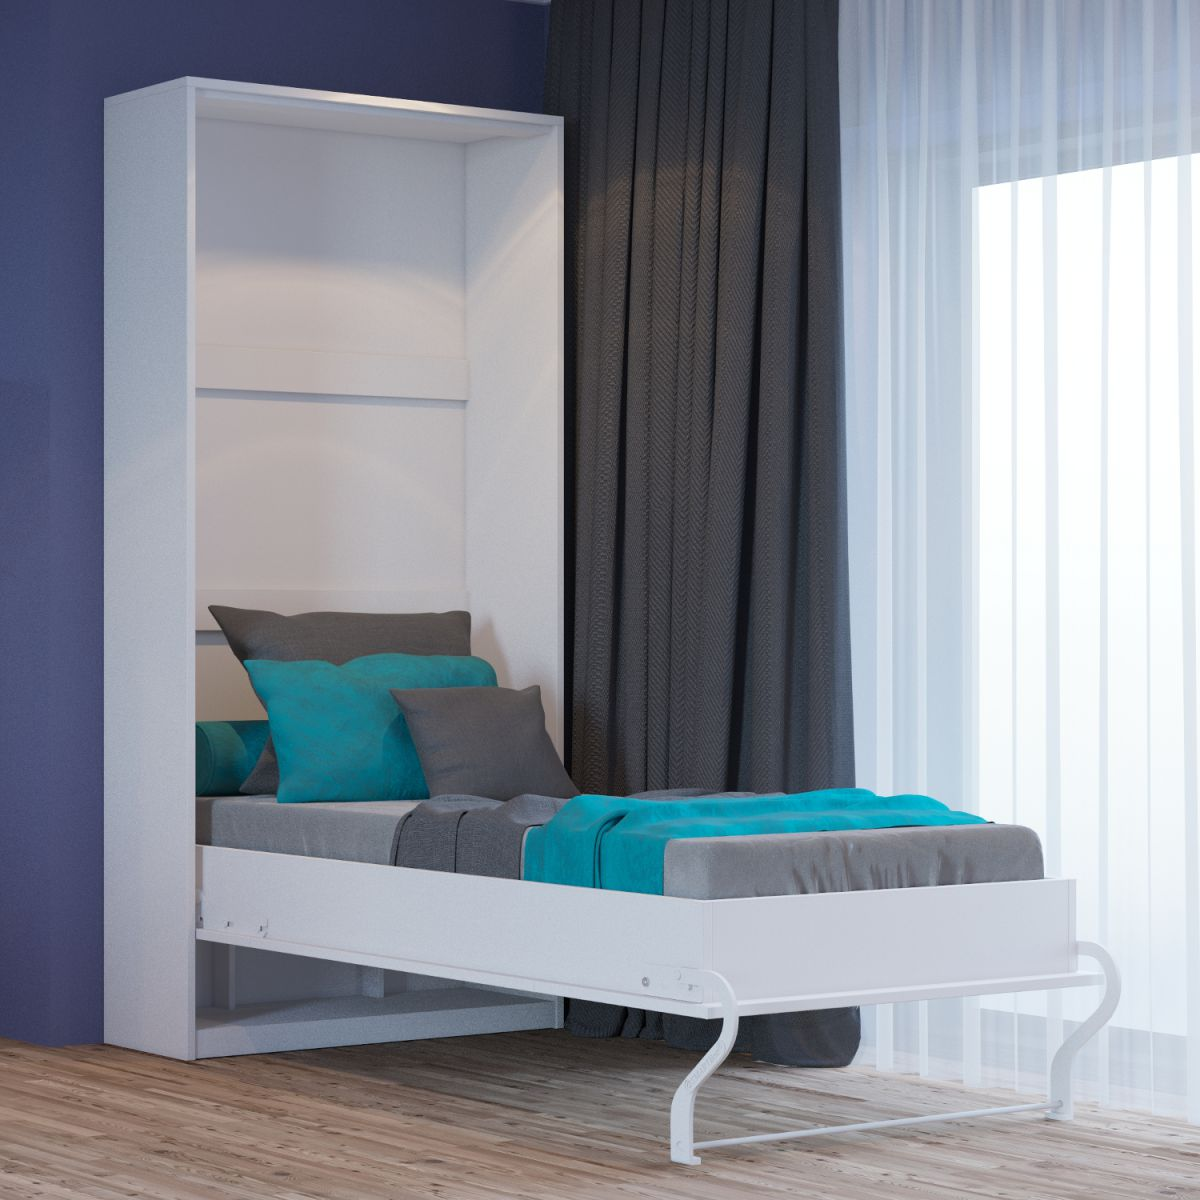 ikea gstebett beautiful interesting schrankbett vertikal ikea schrankbett cm vertikal weiss. Black Bedroom Furniture Sets. Home Design Ideas